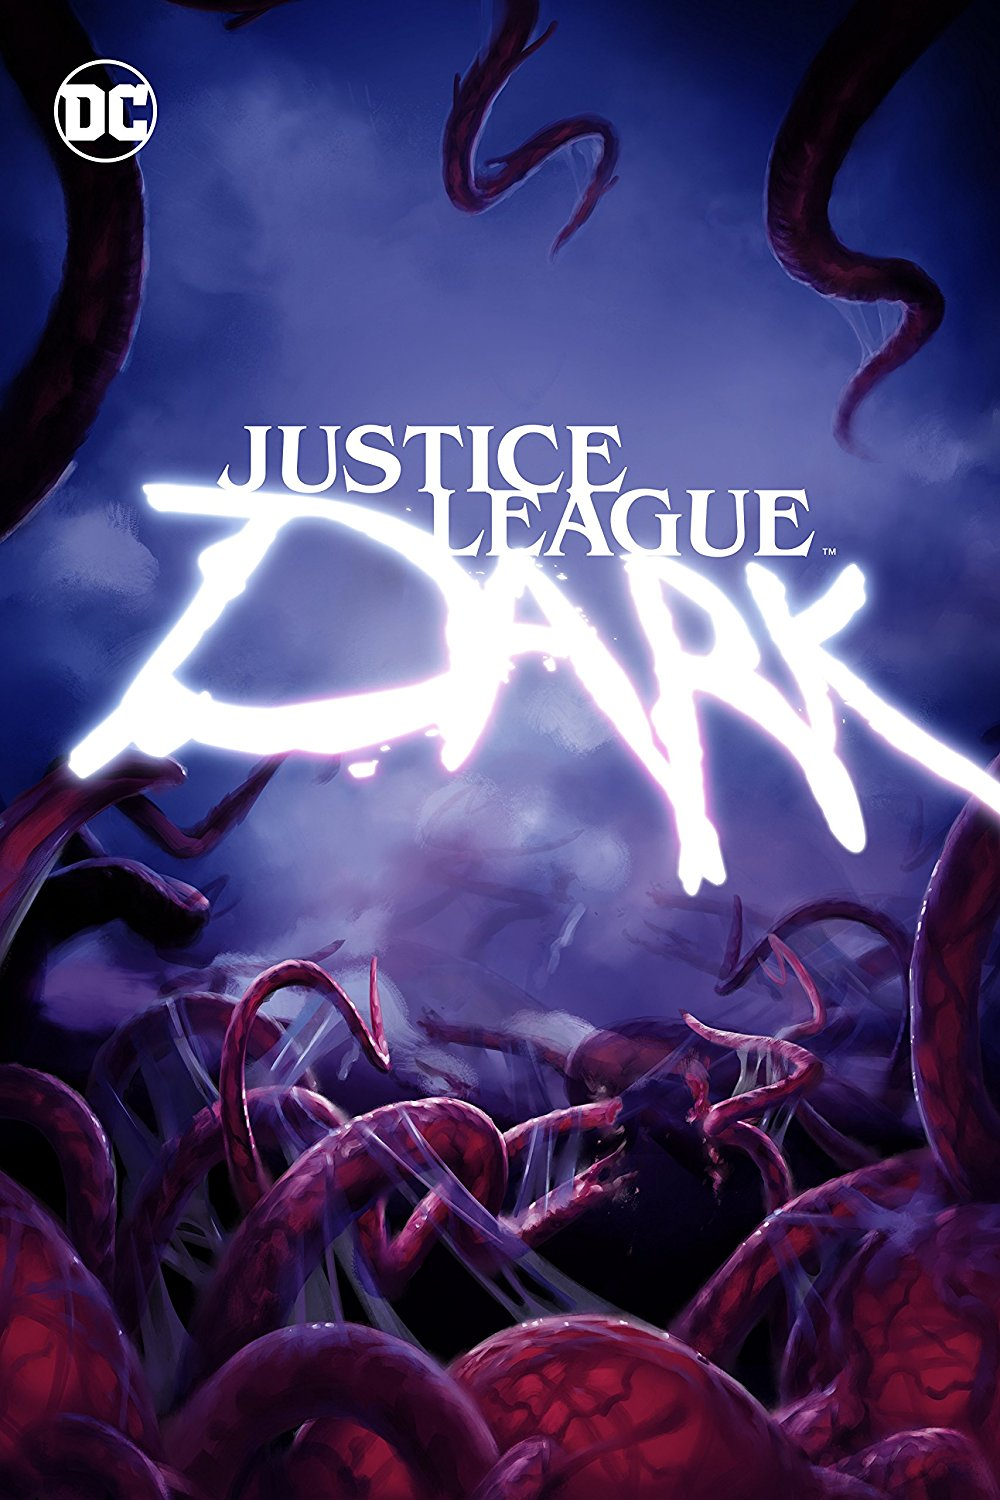 justice-league-dark-animated-movie_0